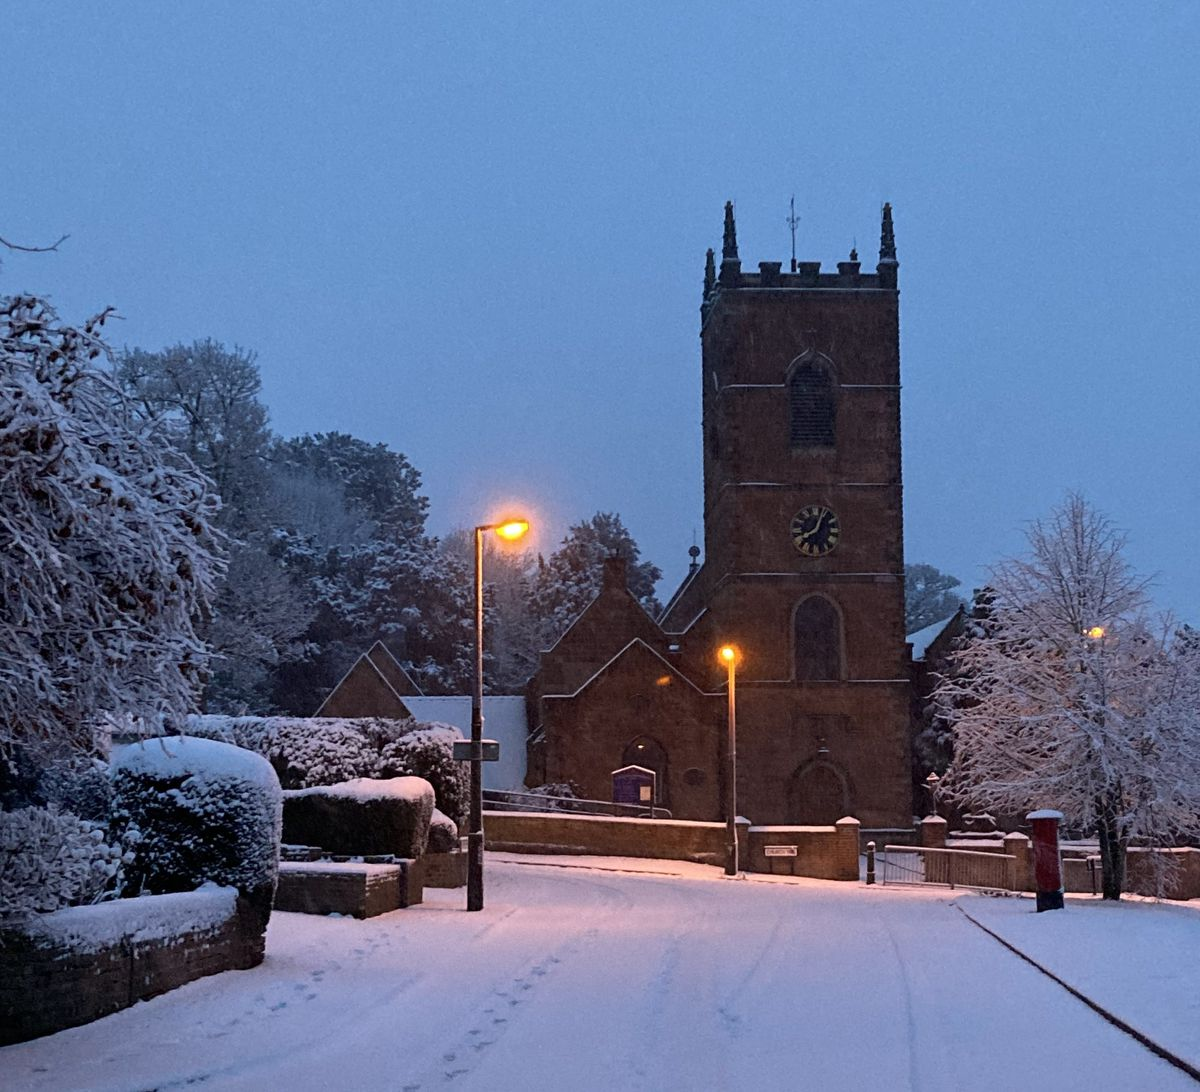 Andrew Harrison shared this photo of St Bart's in Penn